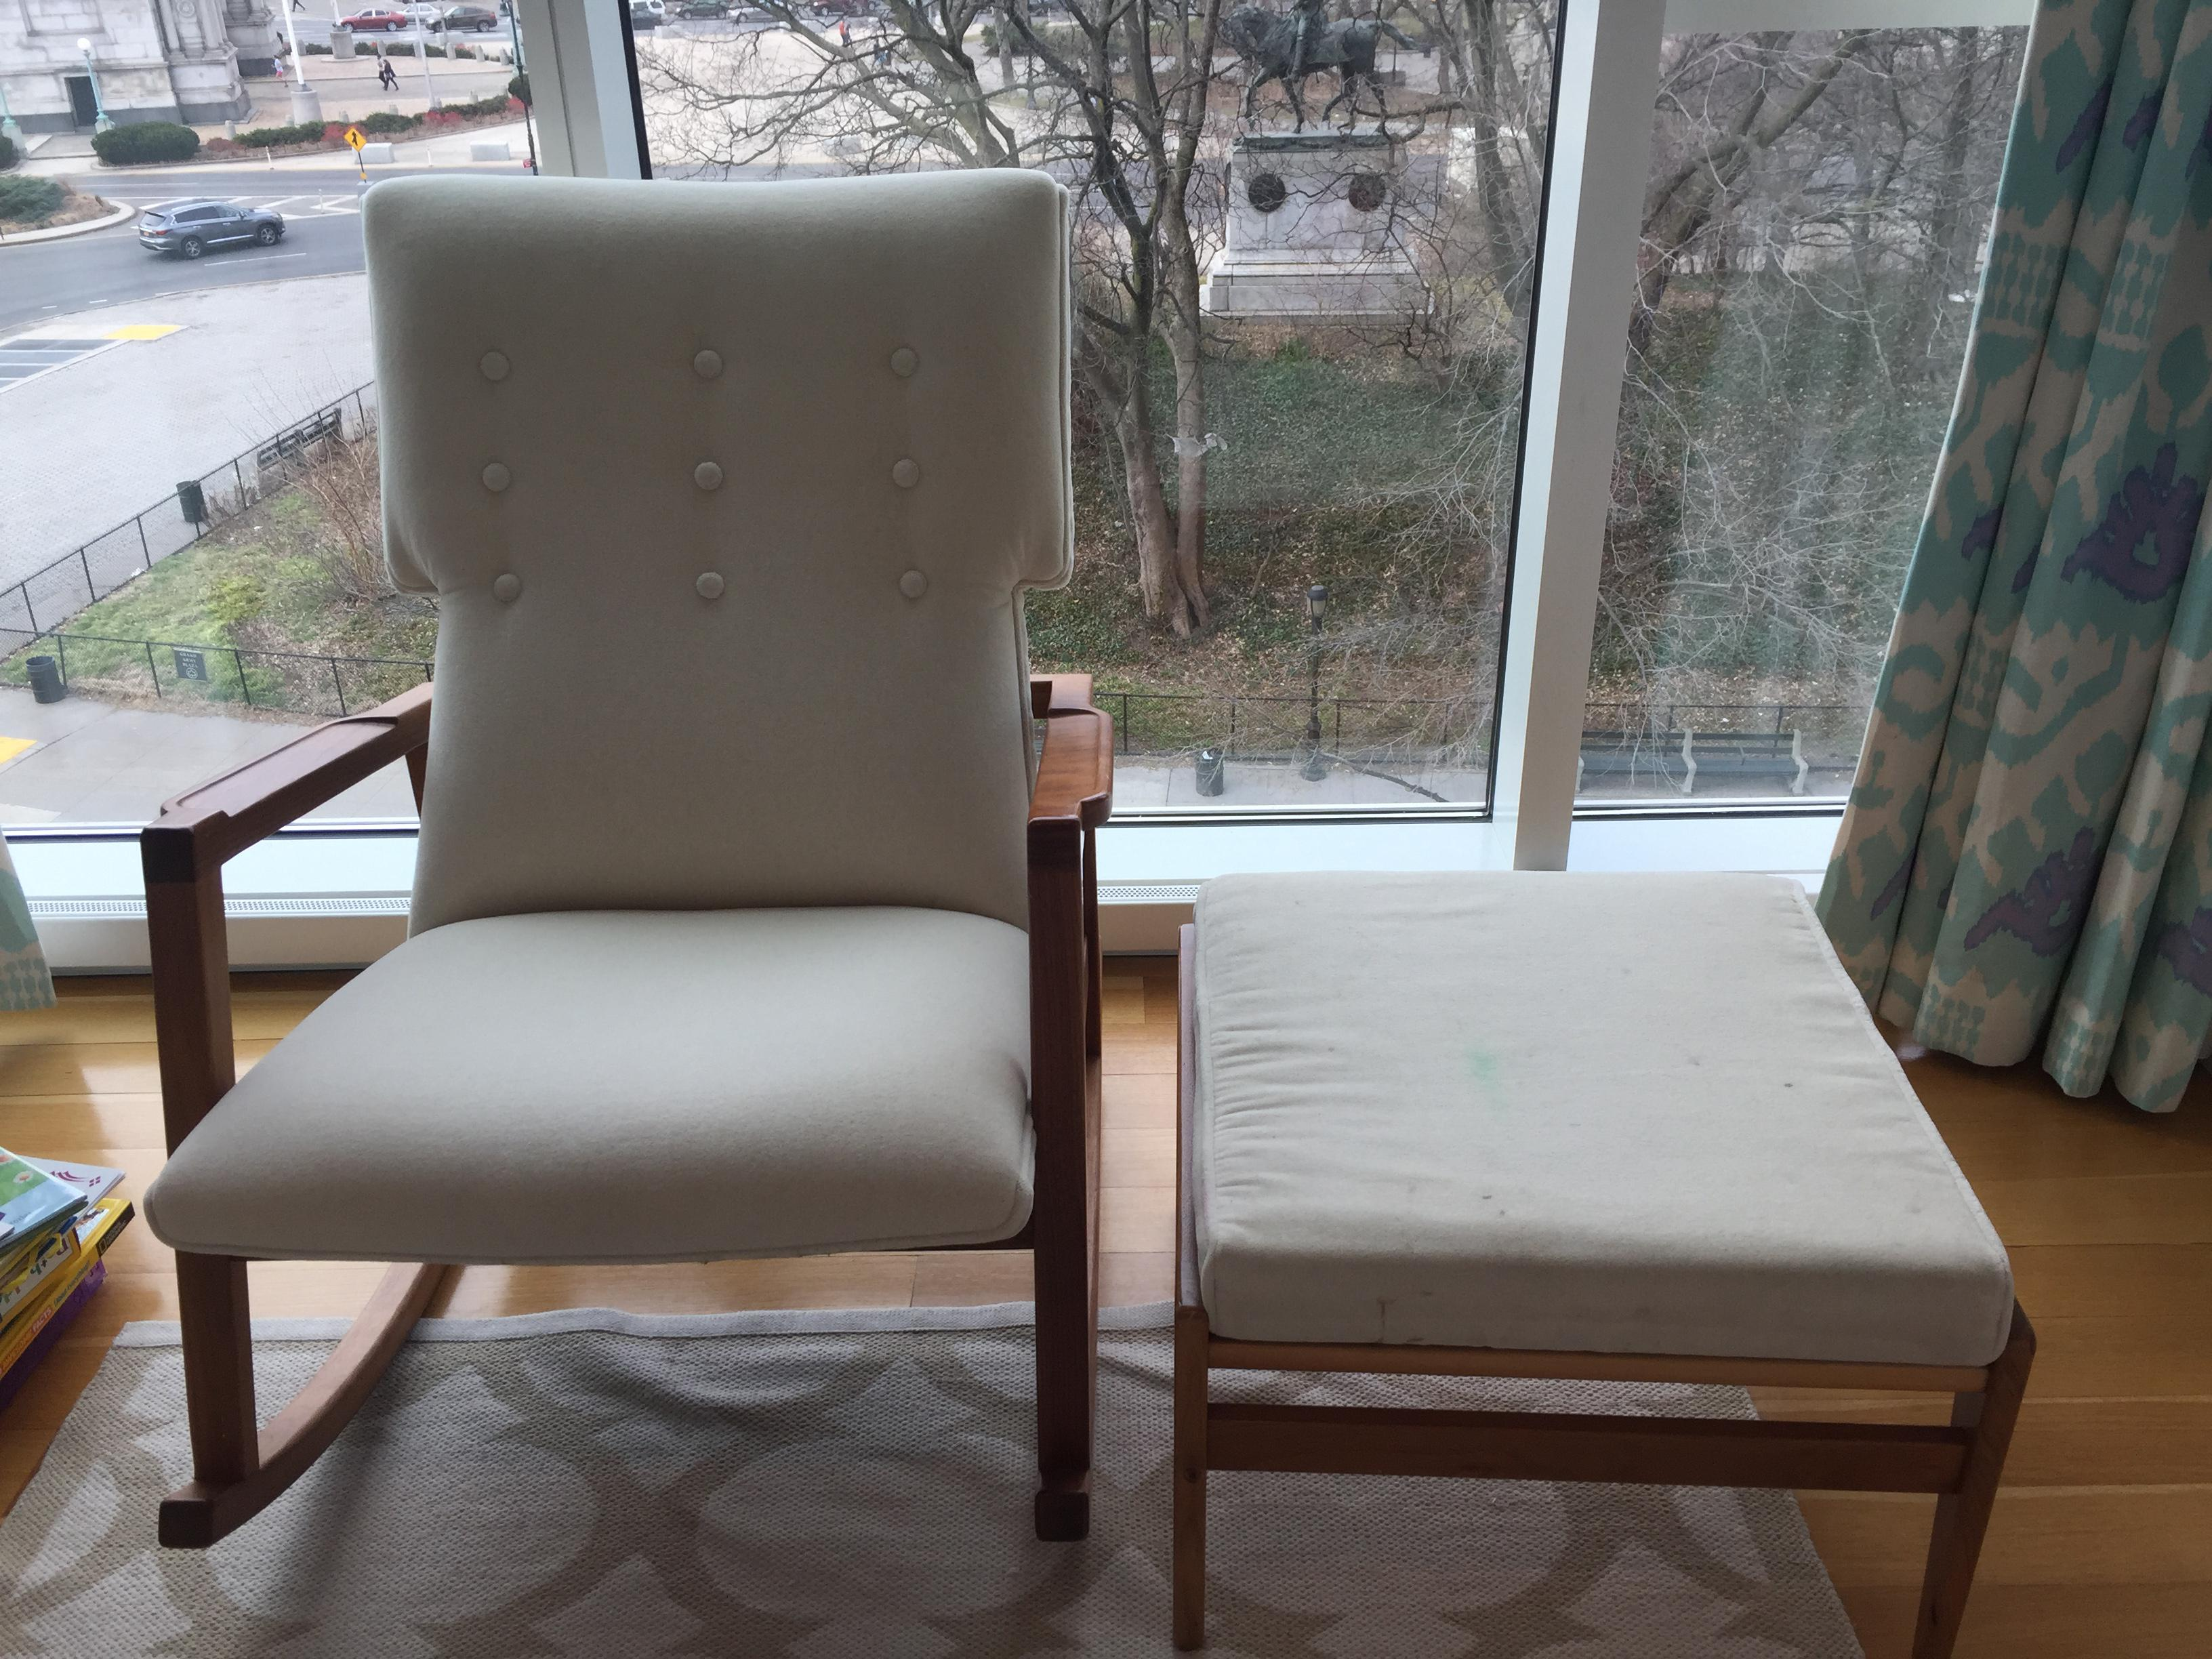 jens chair design within reach white ladder back risom rocker and ottoman chairish this is a rocking set the looks brand new mid century modern